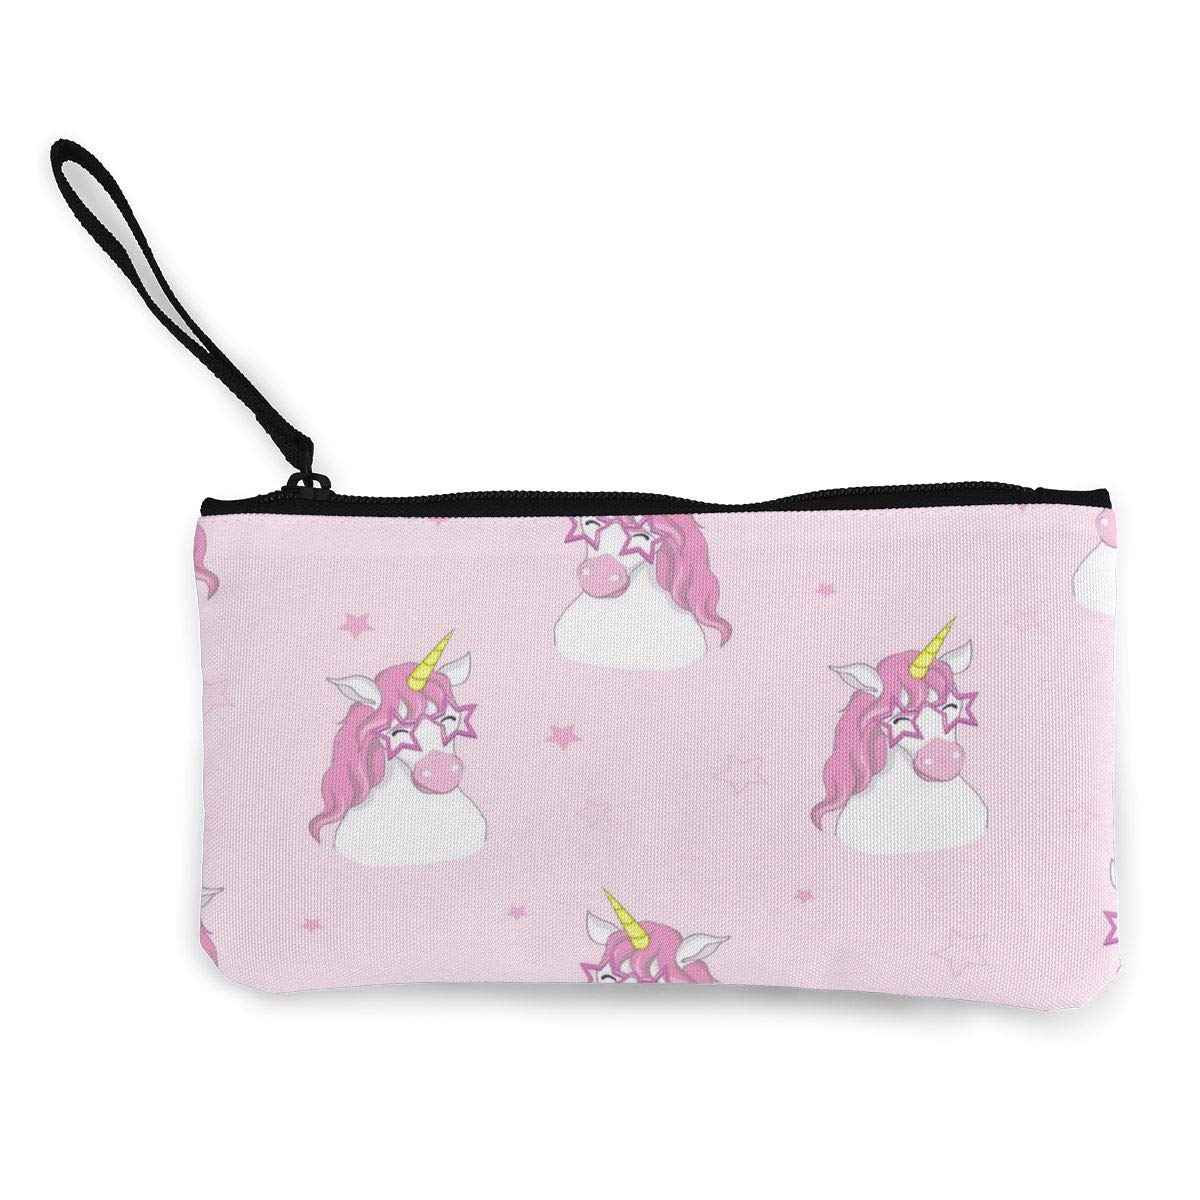 Yamini Star Glasses Flying Horse Pink Background Cute Looking Coin Purse Small and Exquisite Going Out to Carry Purse